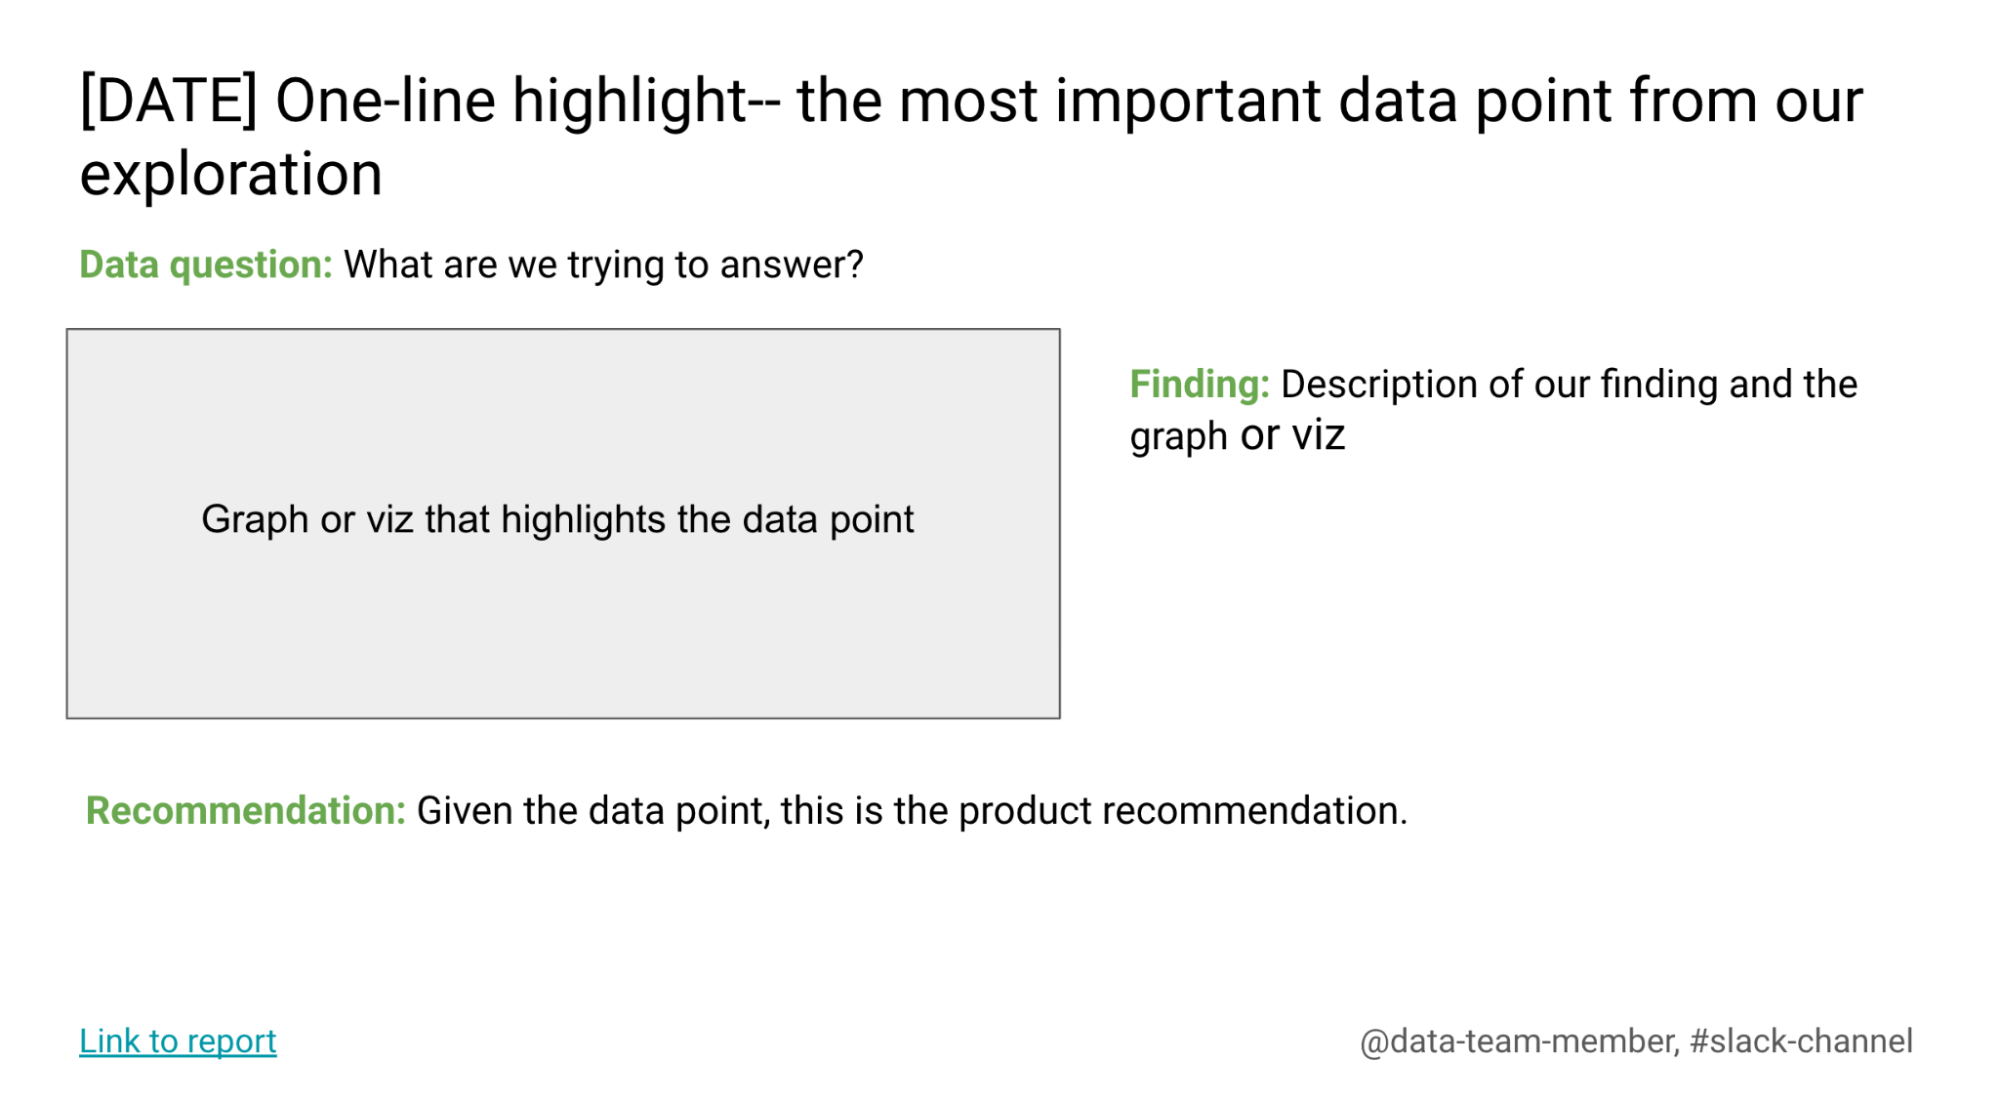 An image showing the template for data highlights.  The template has a title, data question being answered, description of the findings including a space to place graphical analysis, and the Data Science team's recommendation.